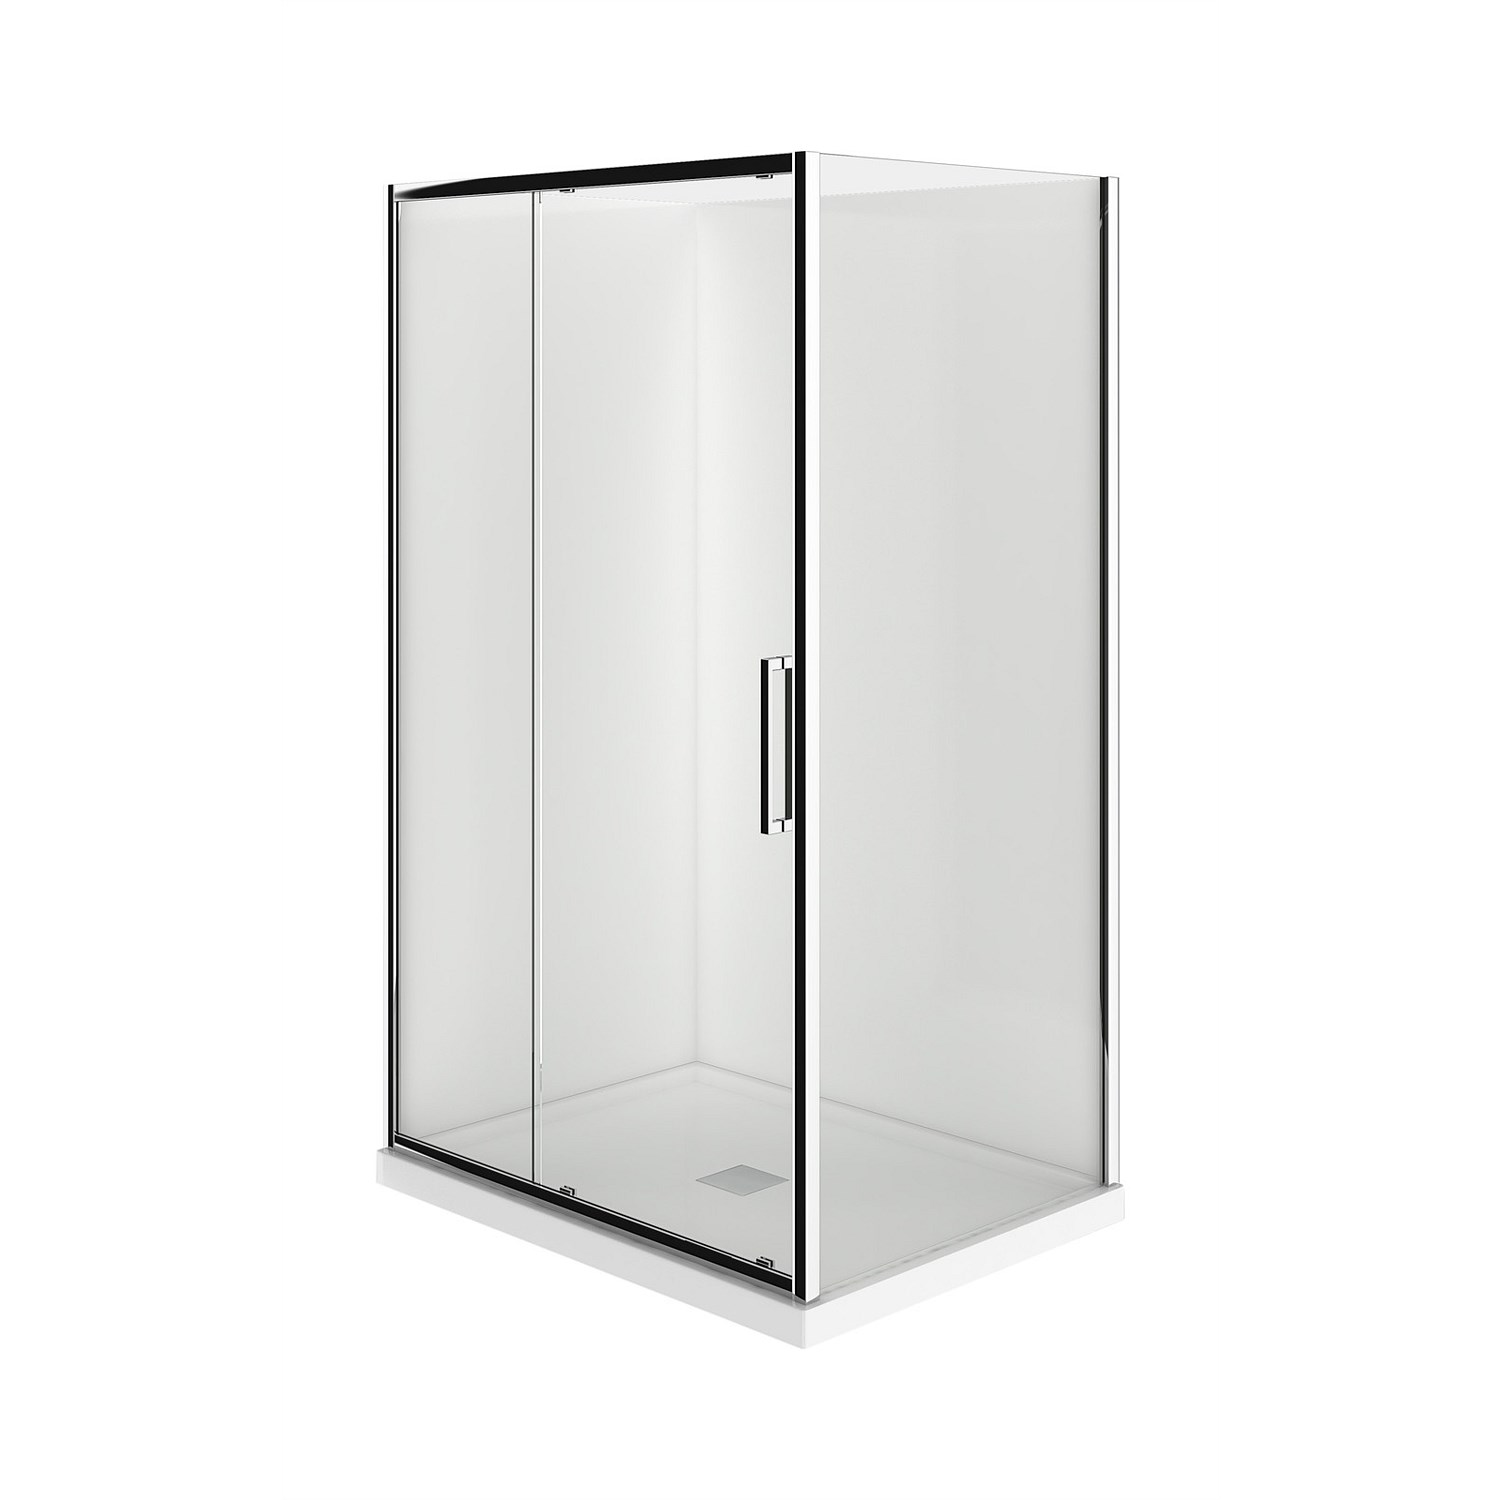 LeVivi - LeVivi 1200mm 2 sided LH Moulded Shower Enclosure